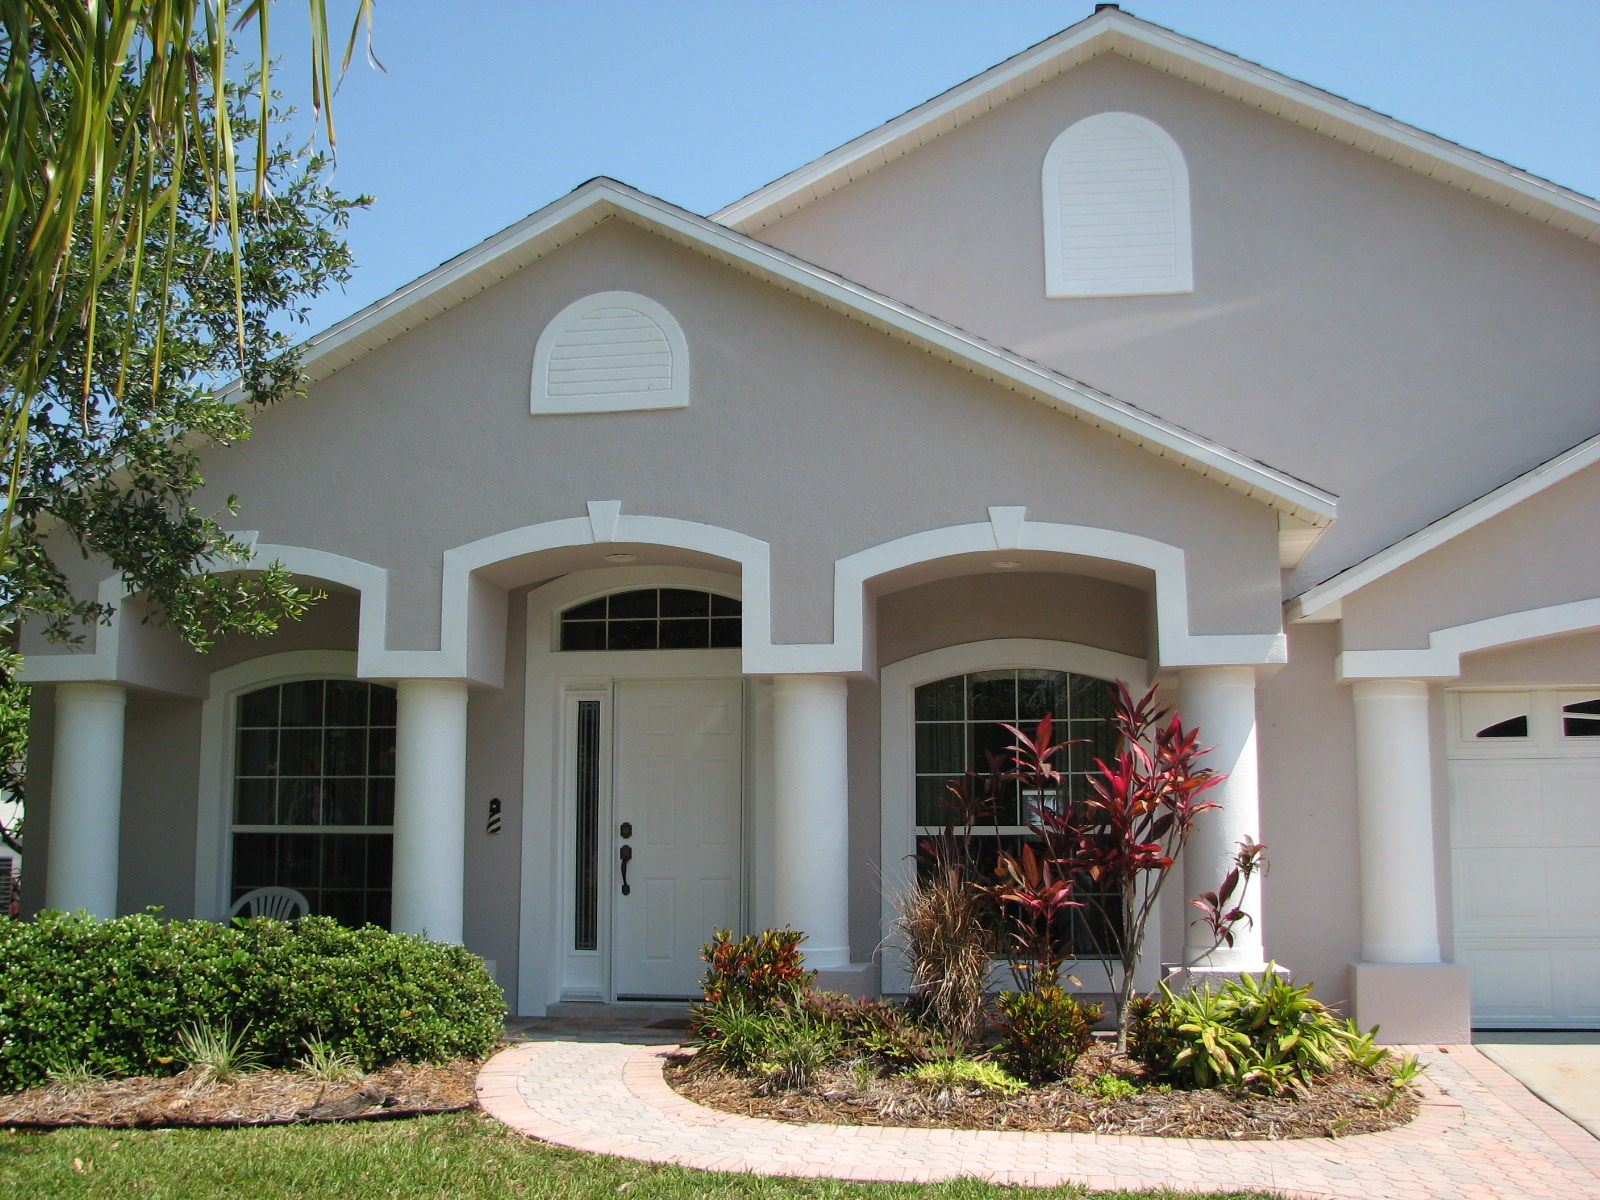 Stucco repair melbourne fl stucco cracks bulging stucco for Stucco colors for houses exterior